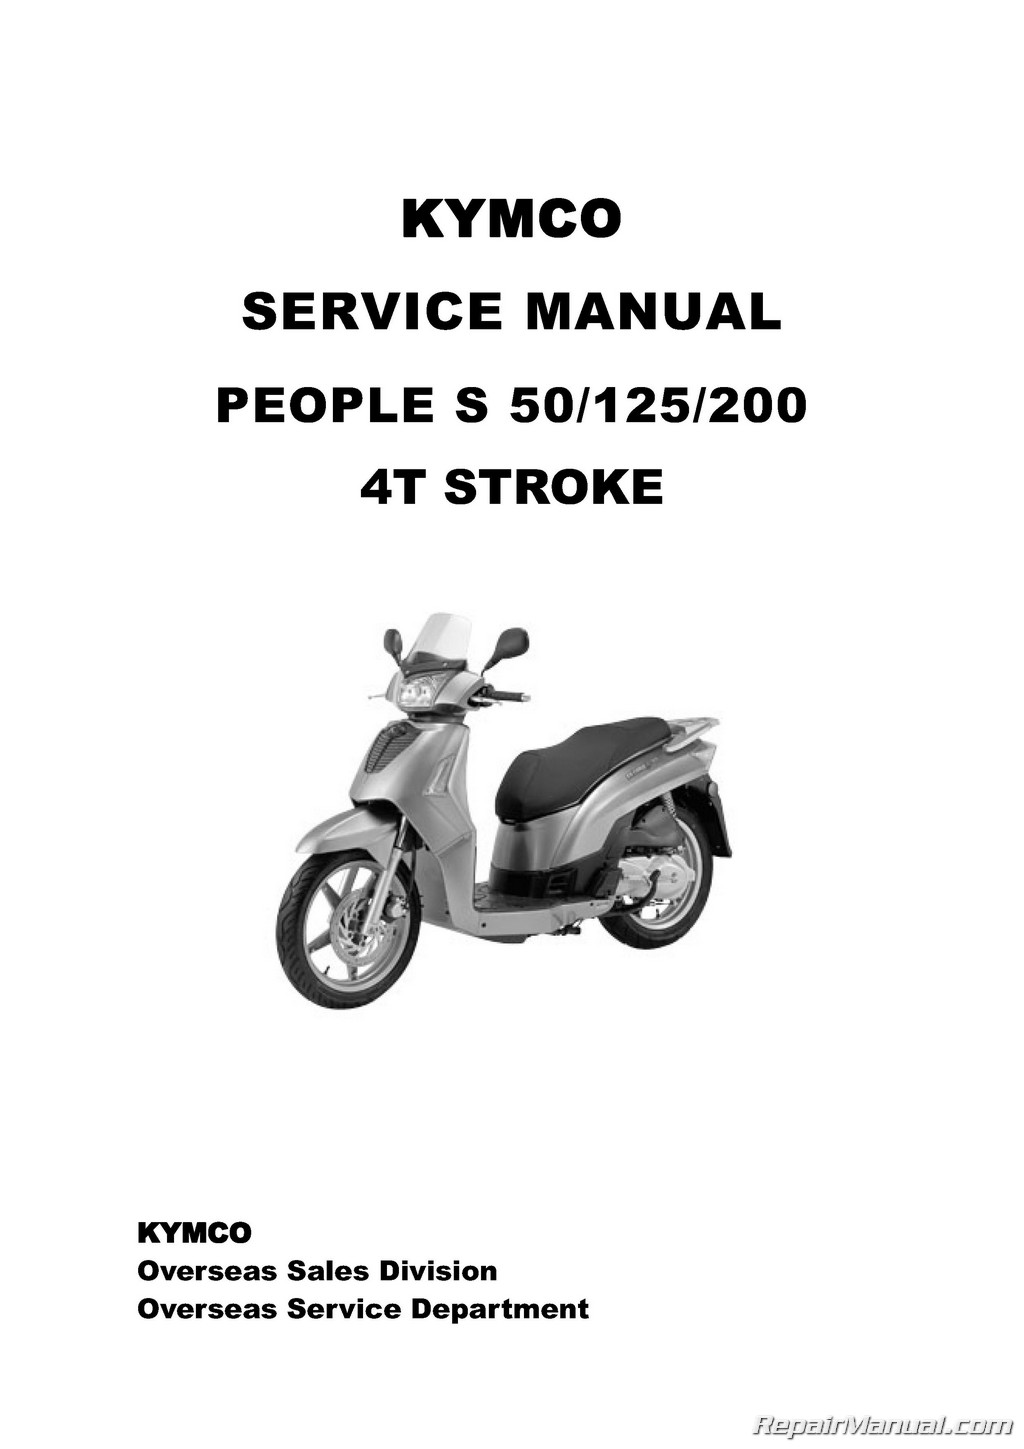 kymco zx scout 50 workshop service repair manual